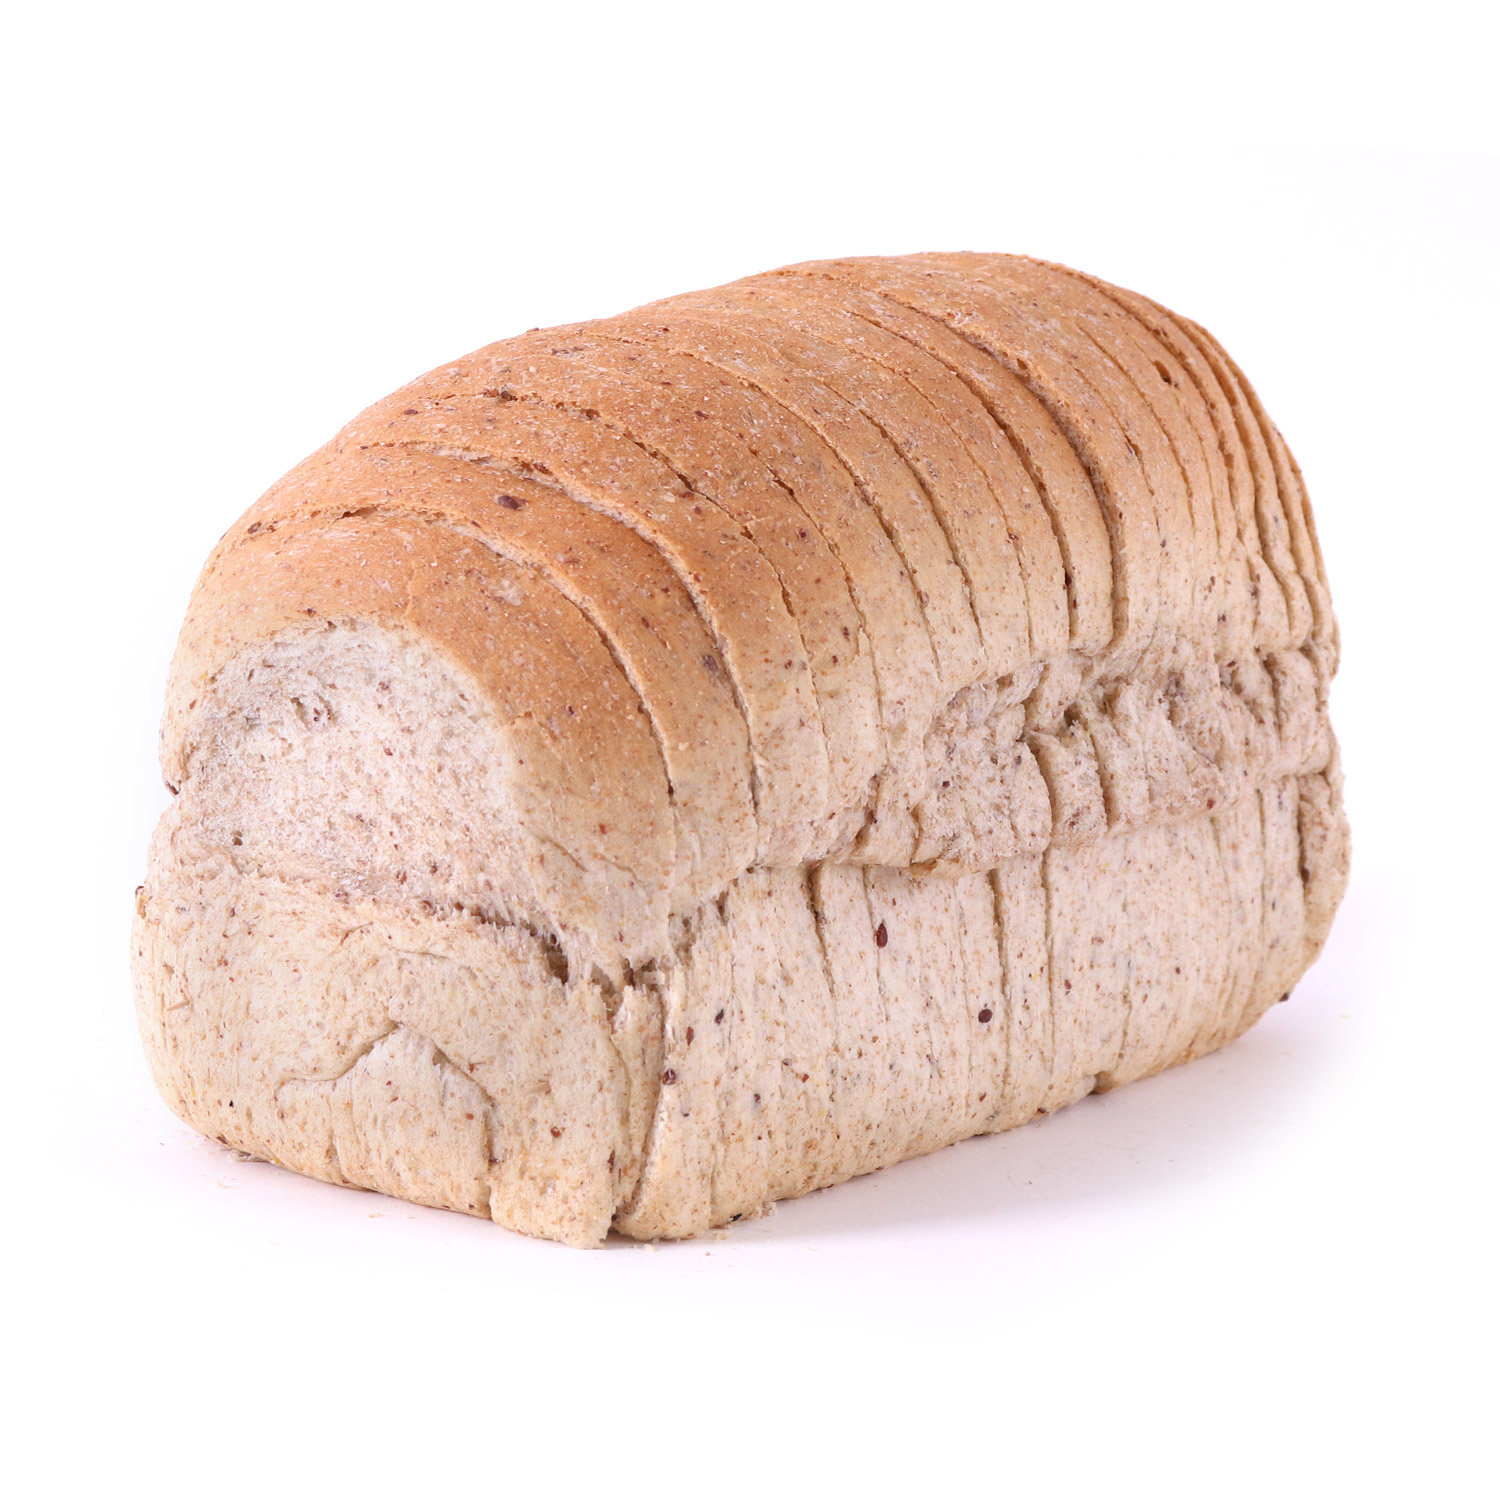 Non-Inflammatory, Whole Cell Bread